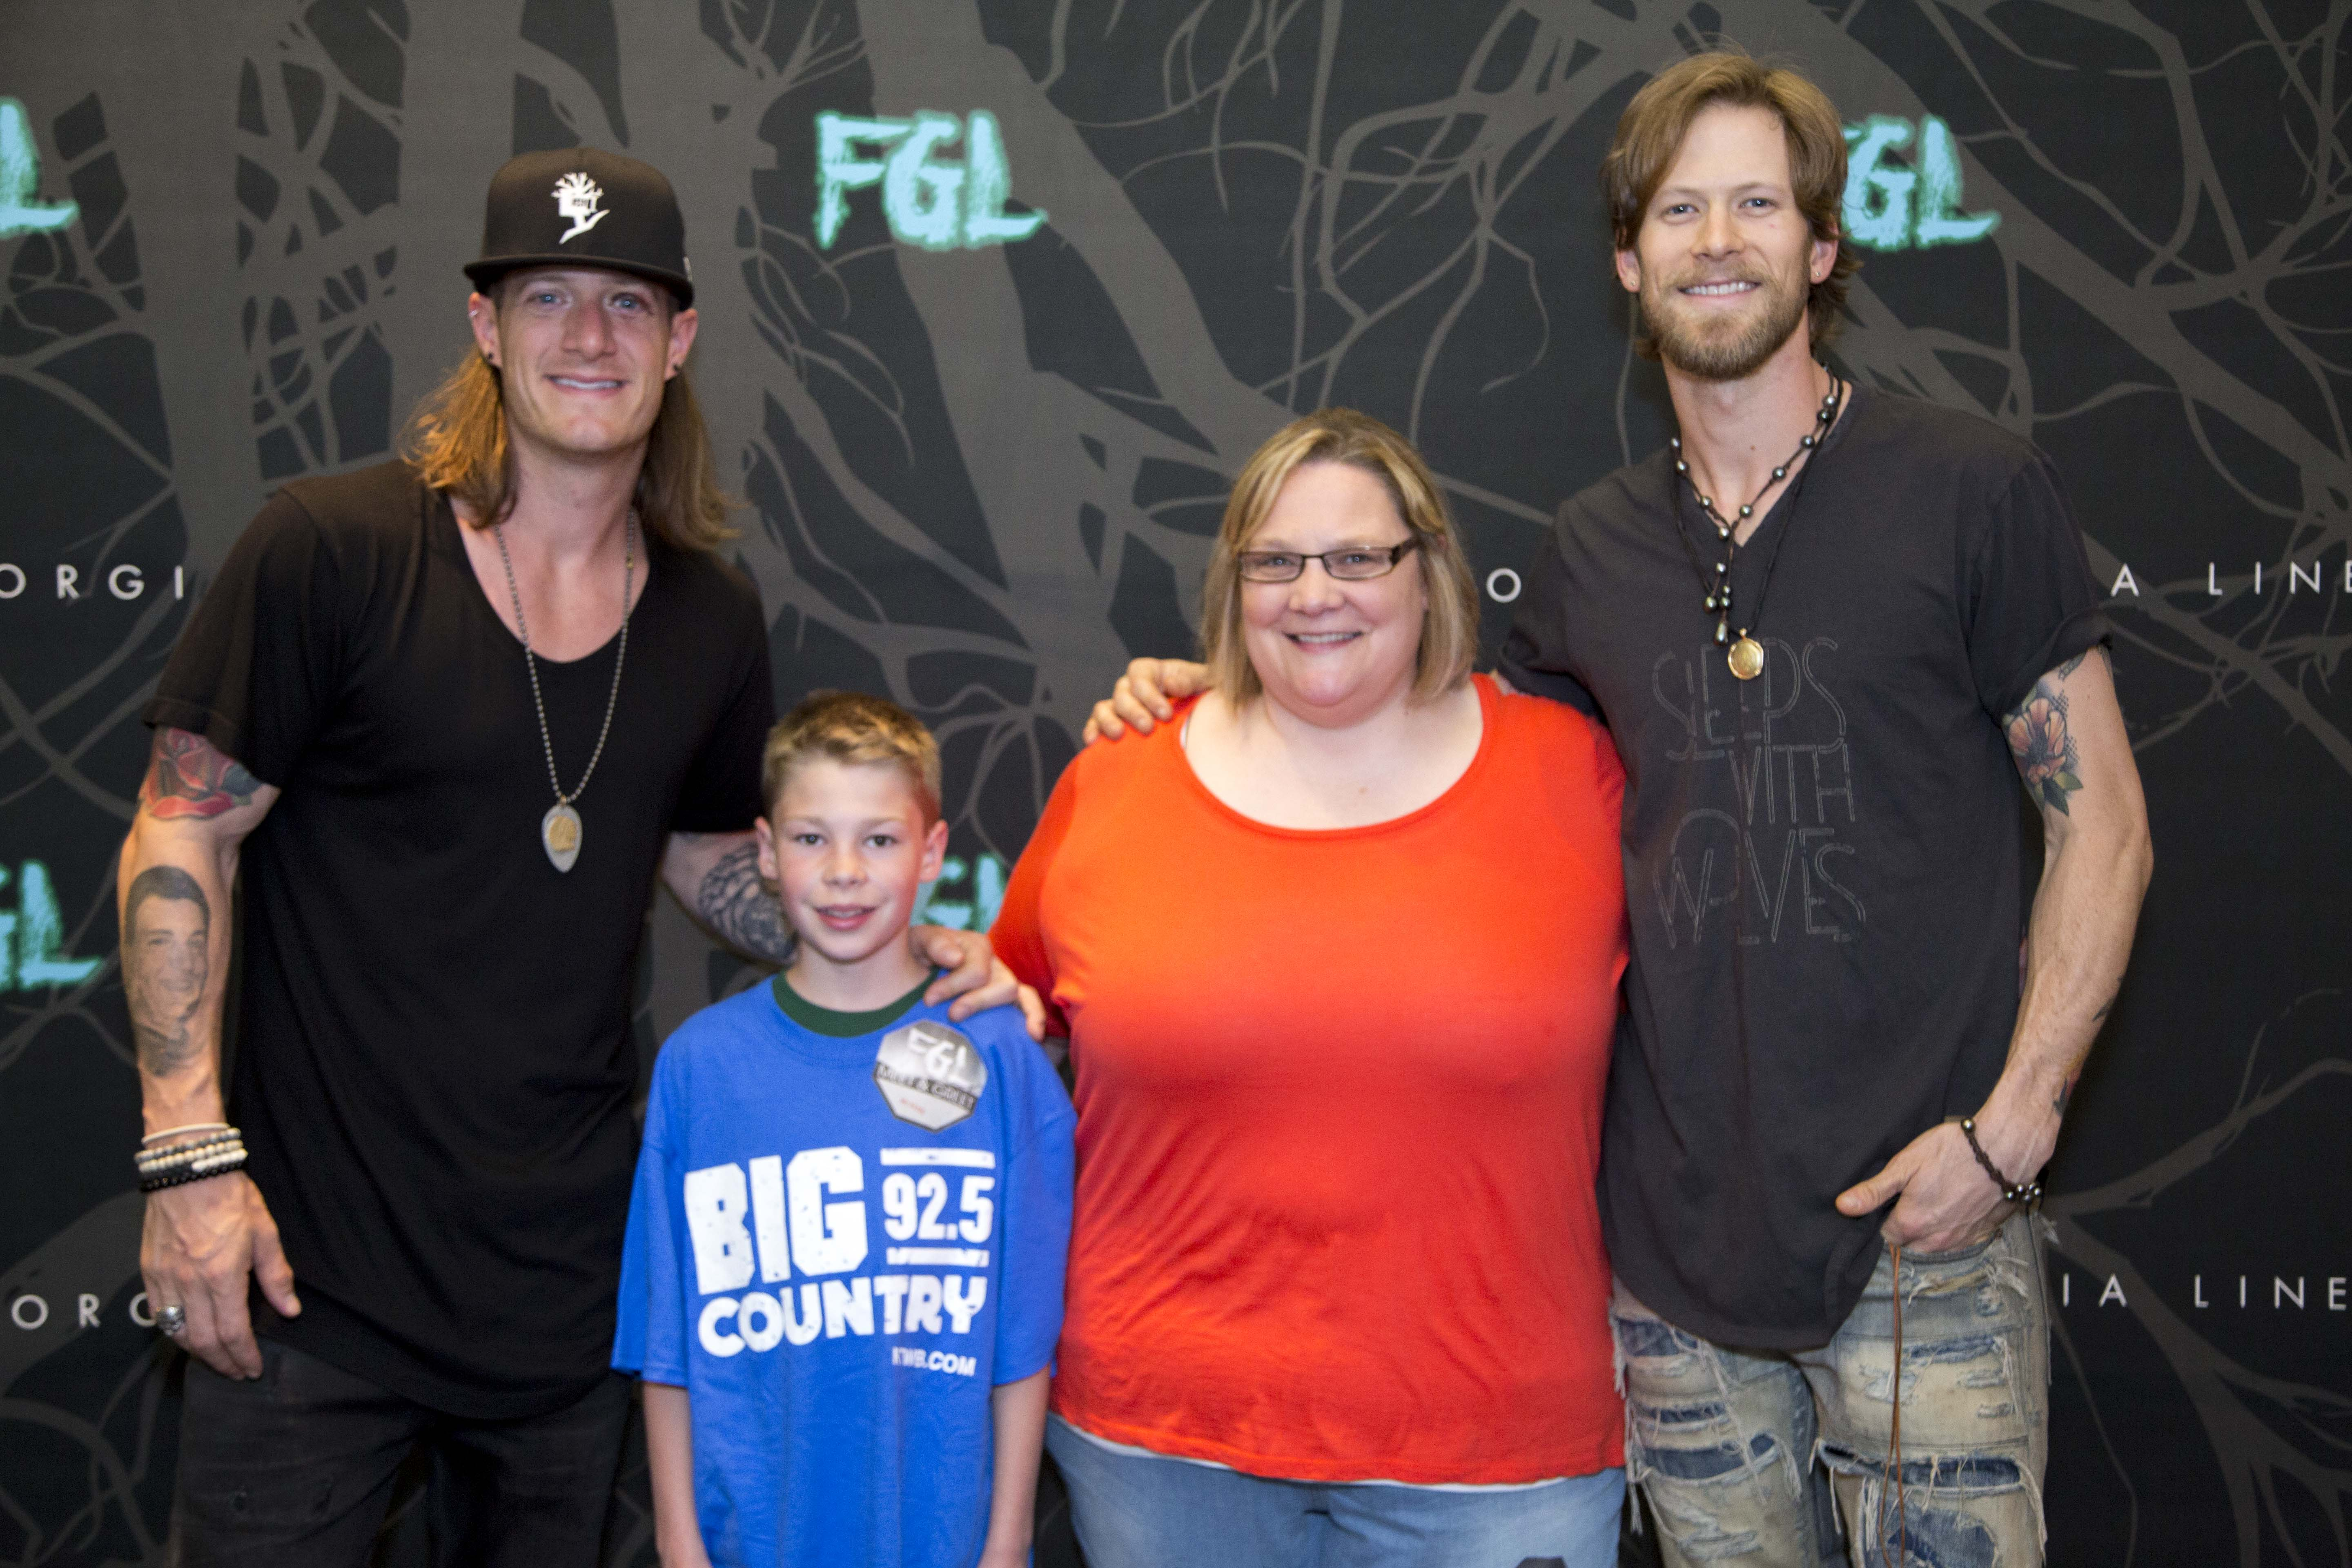 Photos Meet N Greets With Florida Georgia Line And Cole Swindell